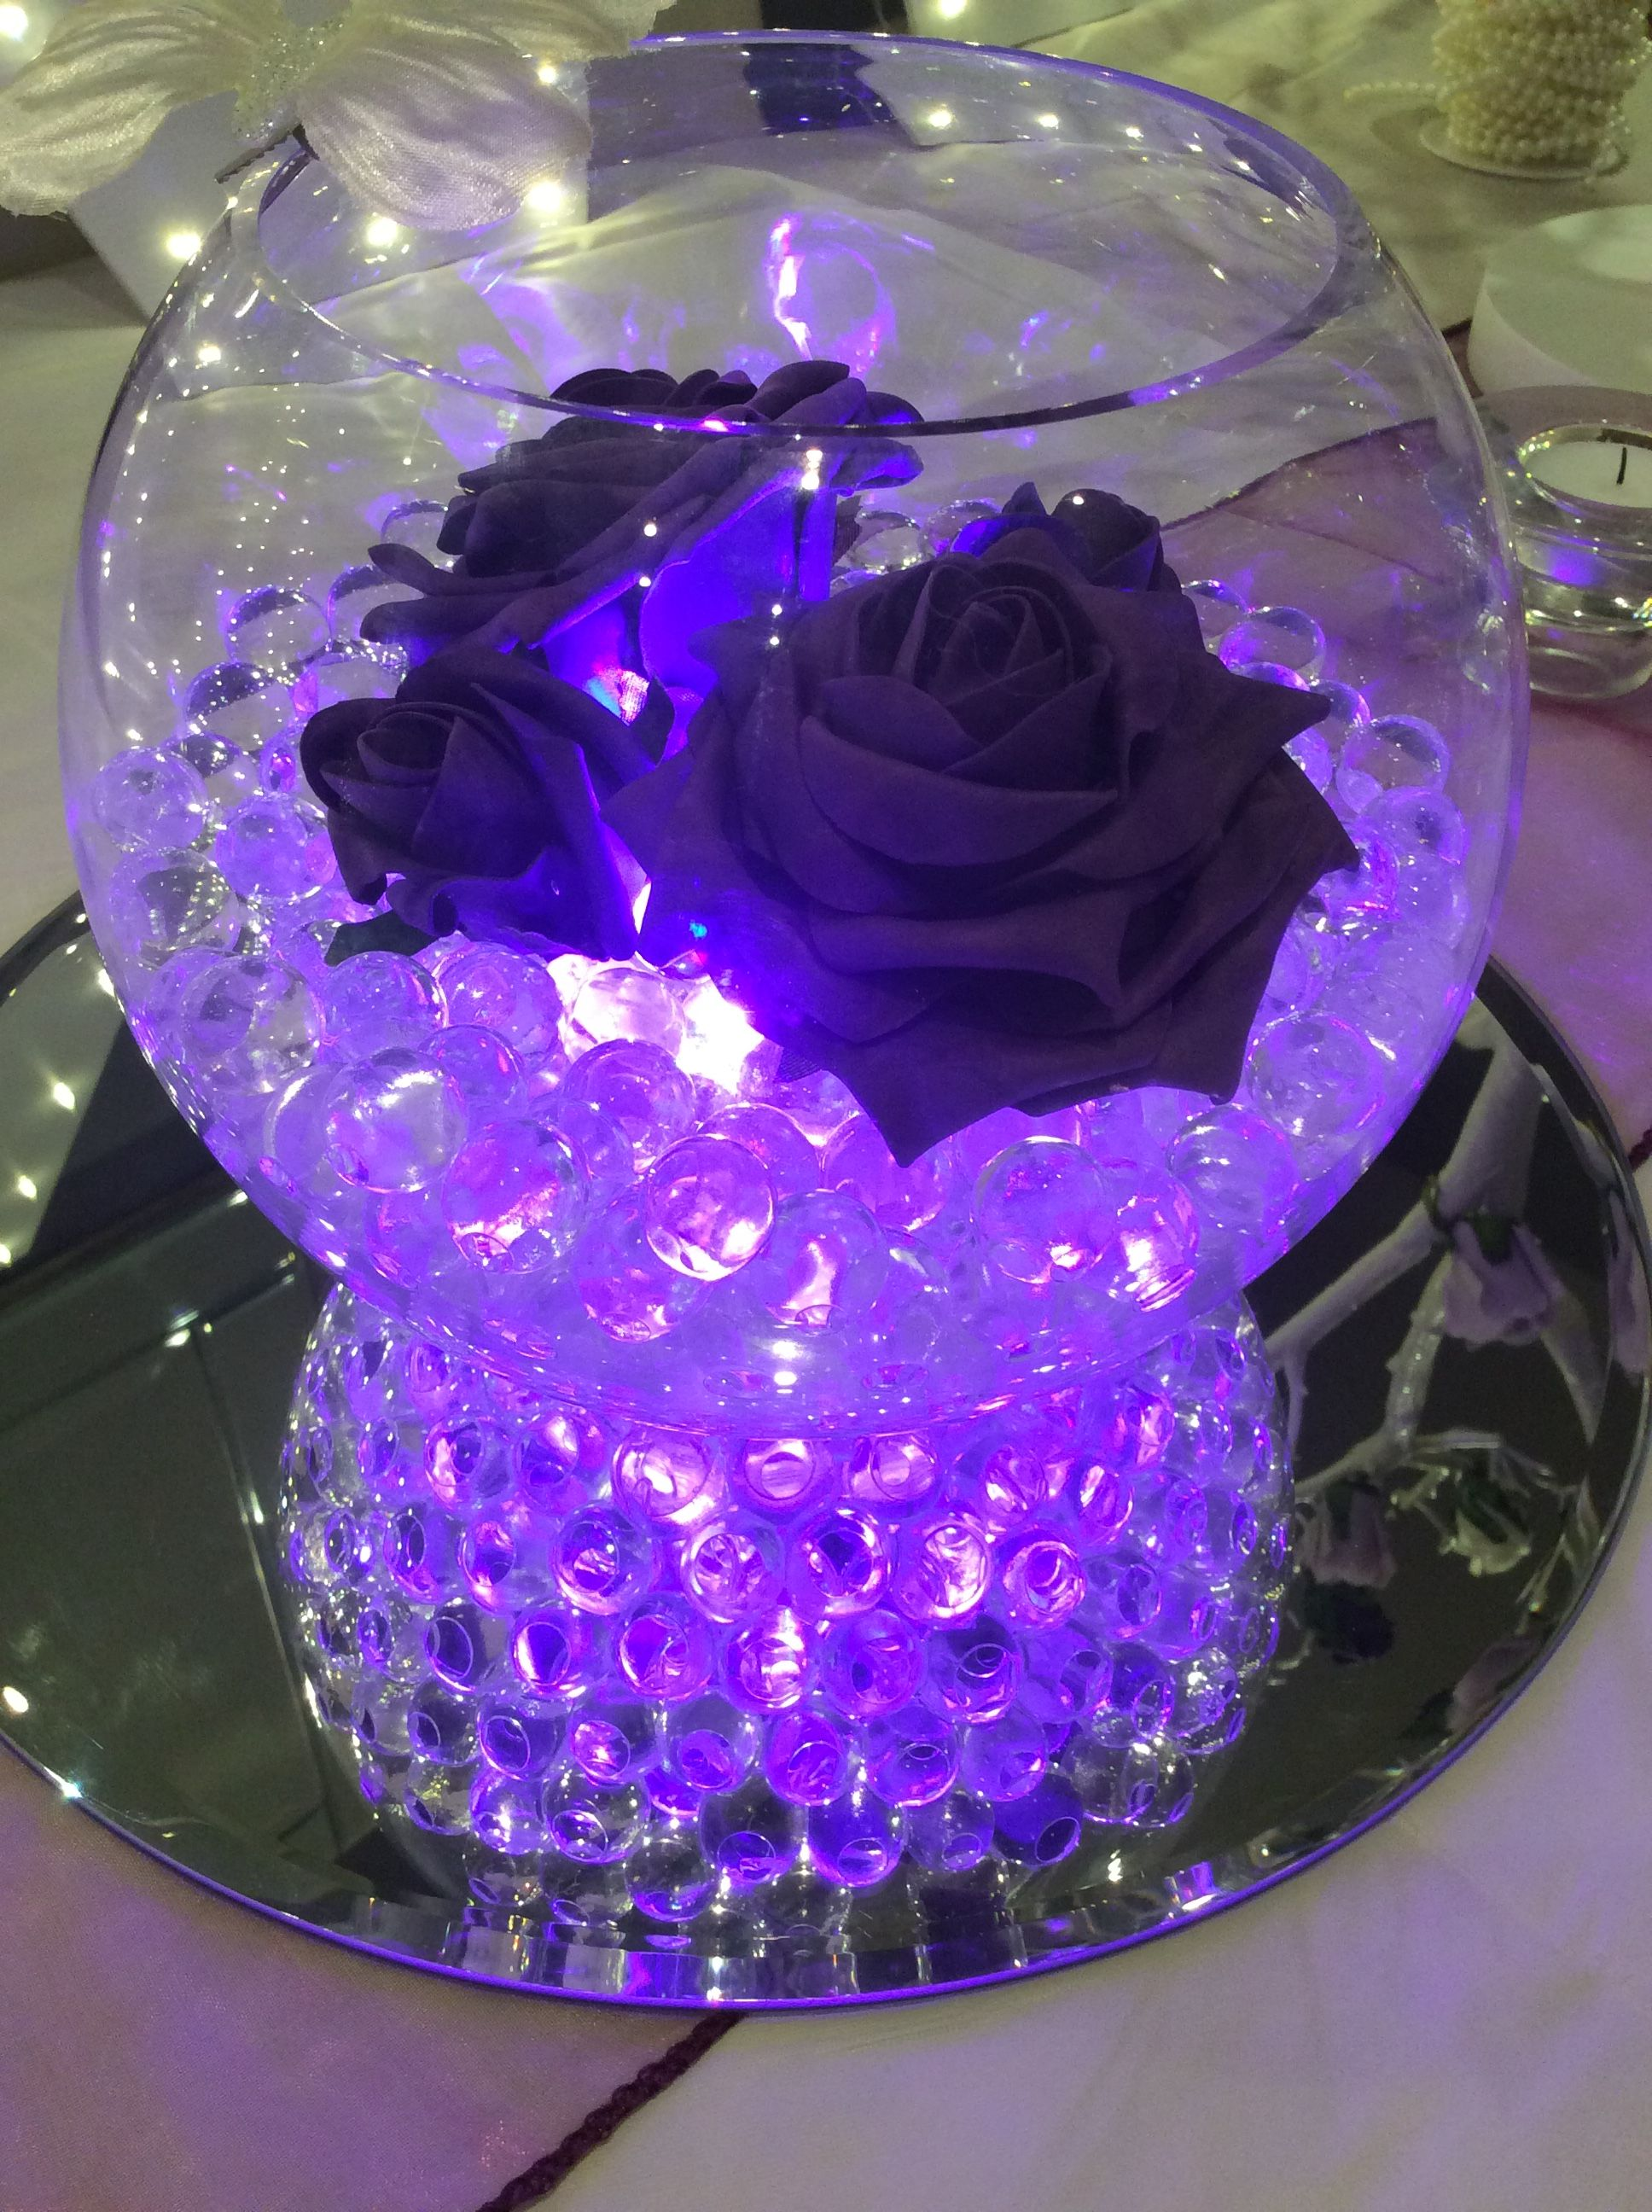 Fish bowl wedding centrepiece for purple themed weddings purple fish bowl wedding centrepiece for purple themed weddings purple illuminated beads cadburys purple roses reviewsmspy